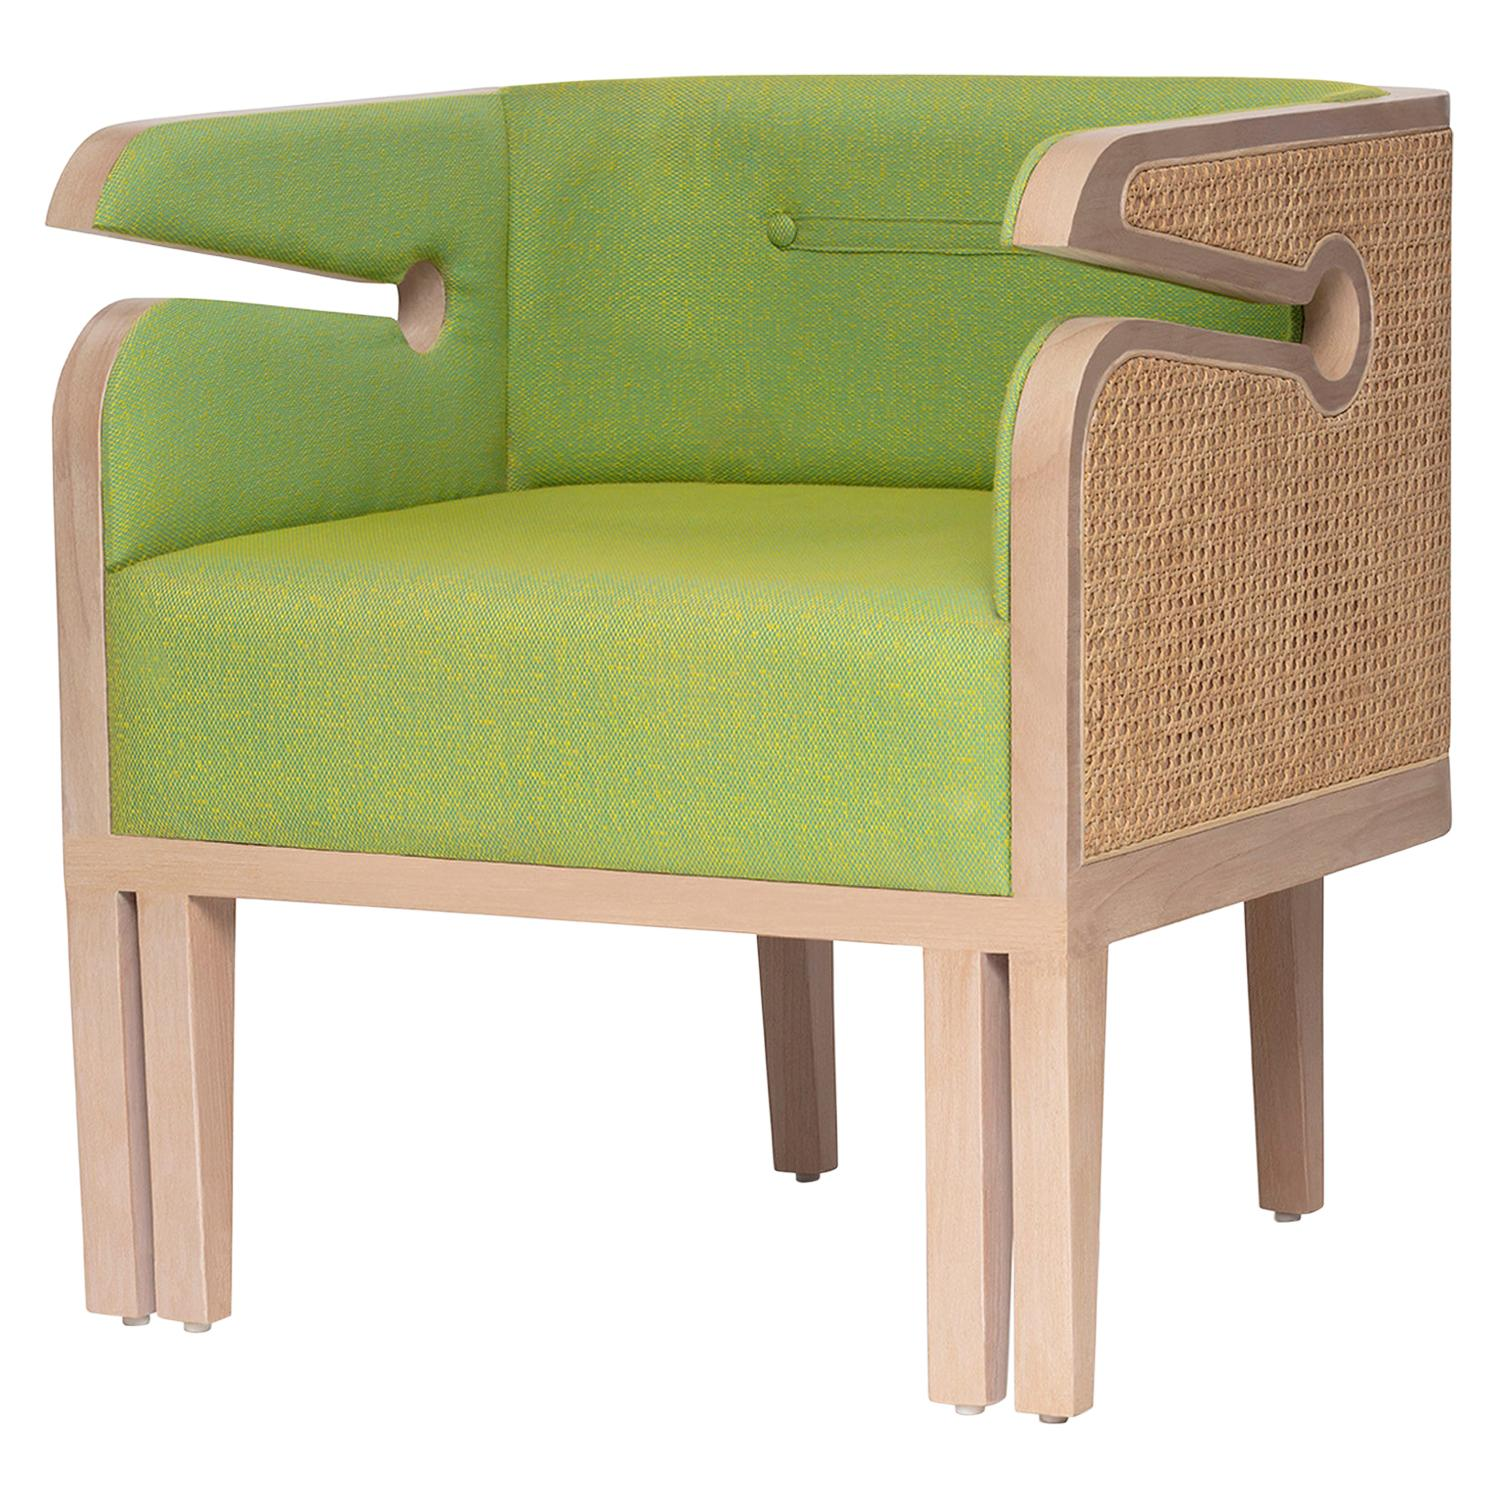 Mid-Century Modern Style Wood Armchair with Woven Cane Upholstered in Textile